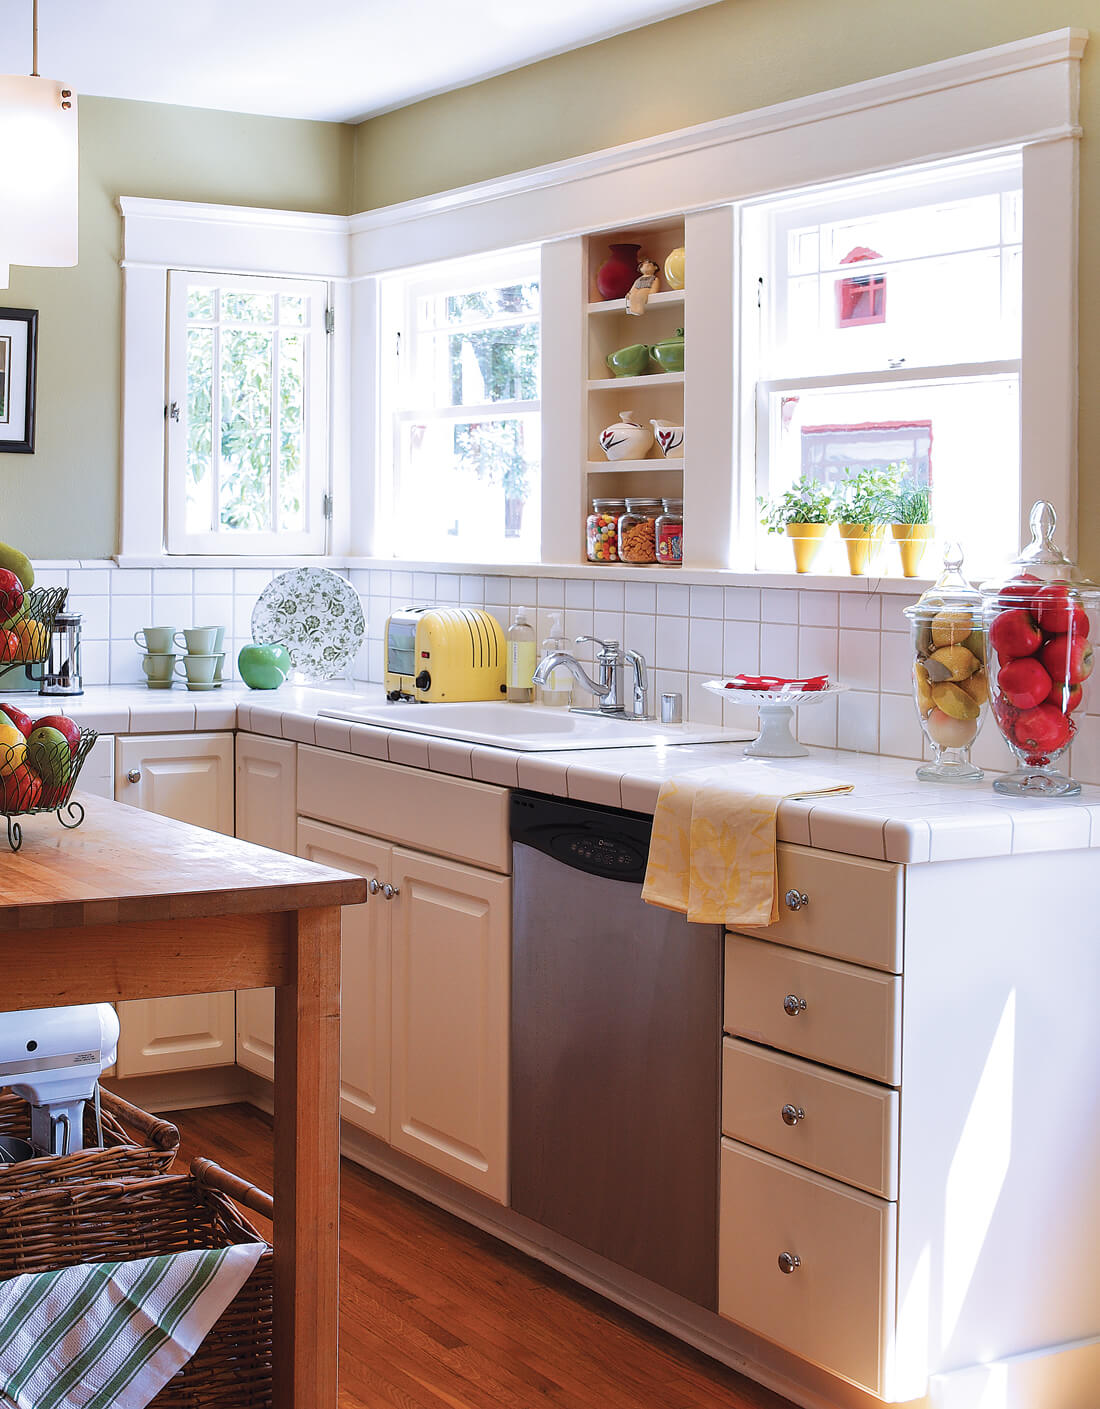 Farmhouse style kitchen with country charm and white square-tiled countertop.